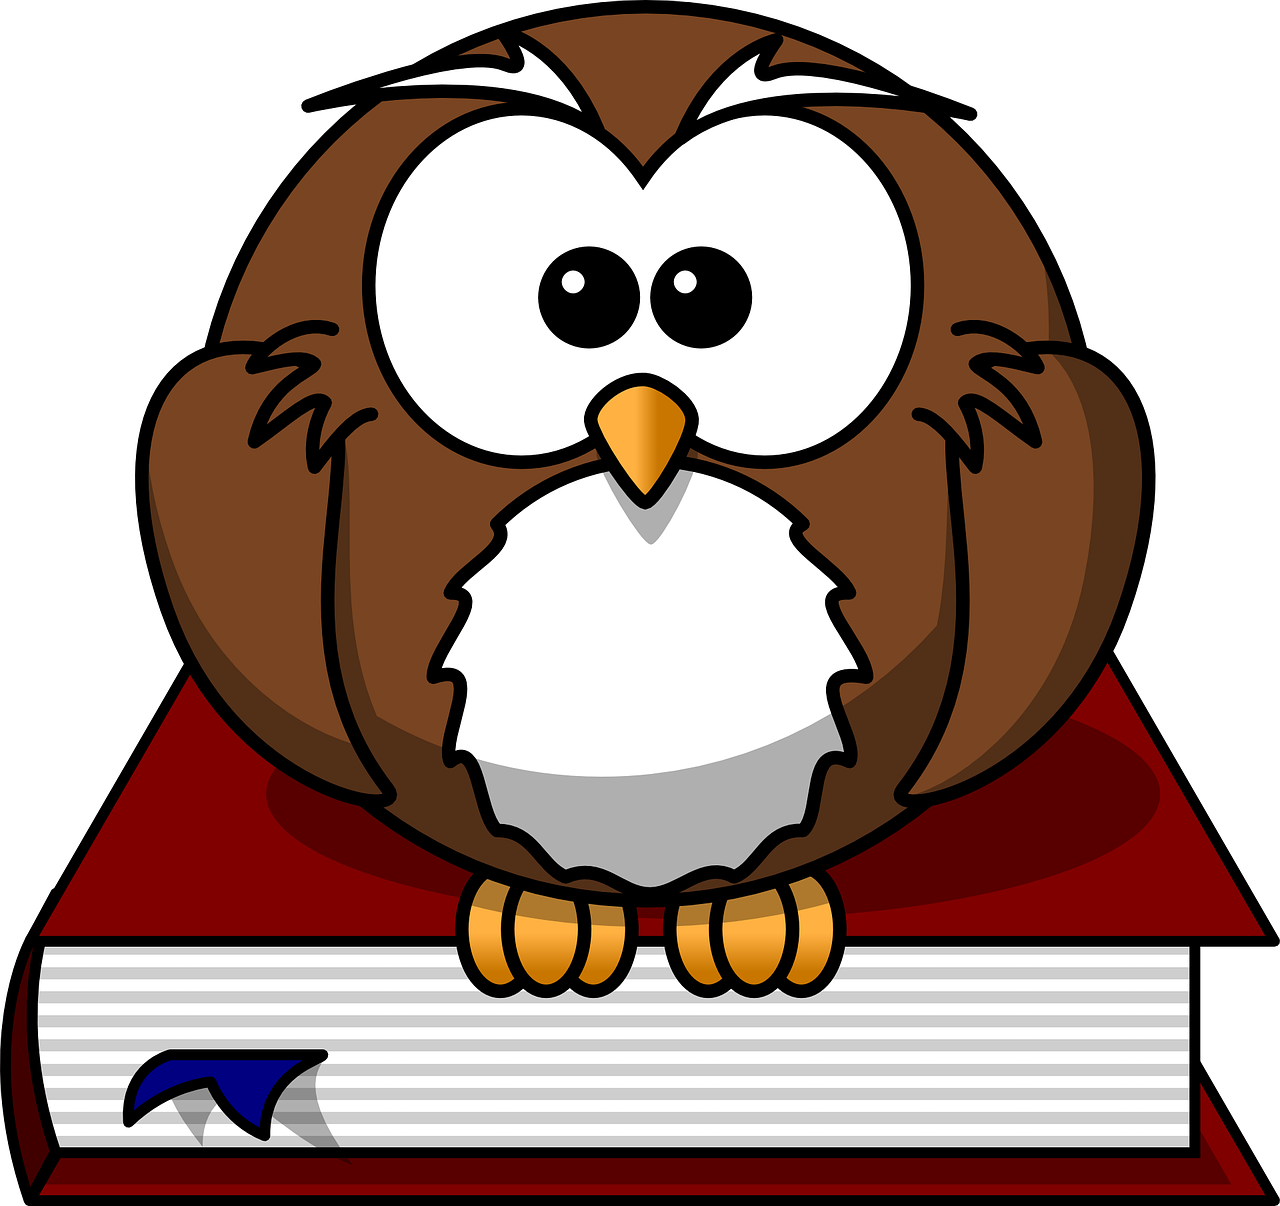 Colorful drawing of an owl sitting on a book,